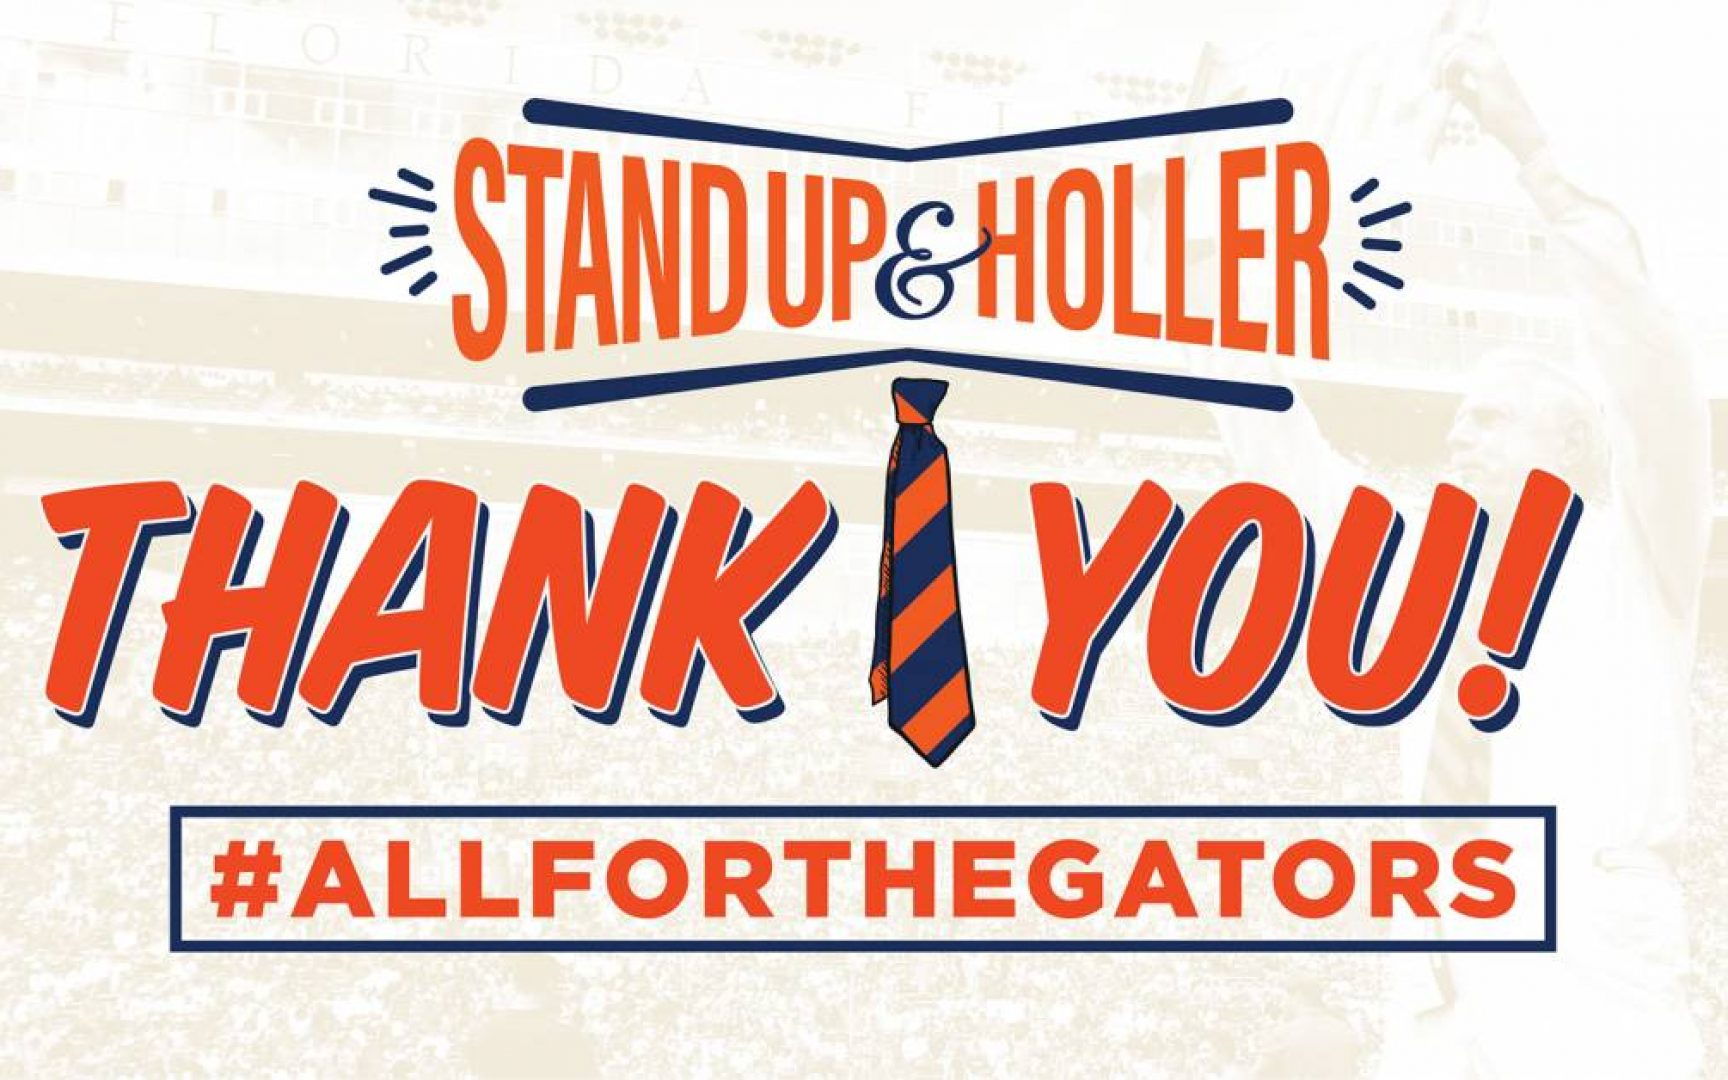 Stand Up and Holler Thank you #All for the Gators